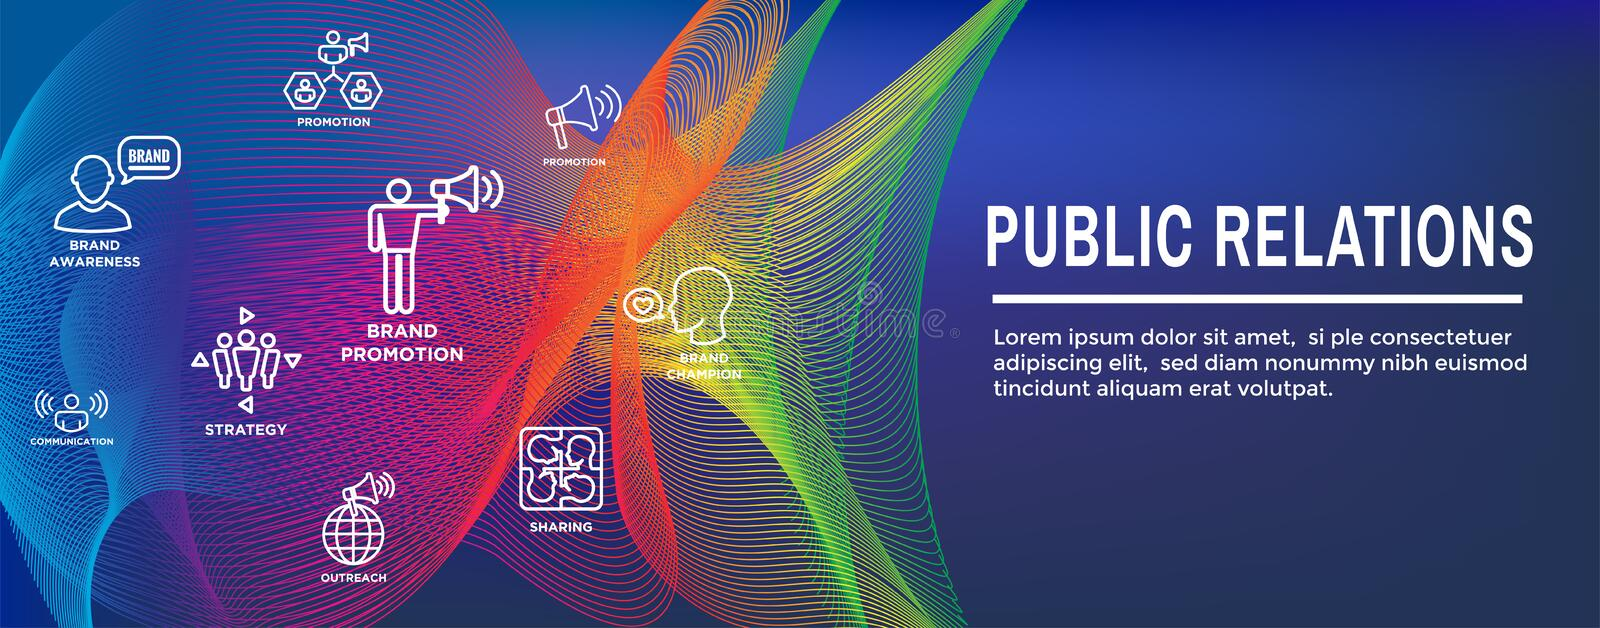 Public Relations Web Header Banner and Icon Set with brand awareness, strategy, and promotion. Public Relations Web Header Banner & Icon Set with brand awareness vector illustration